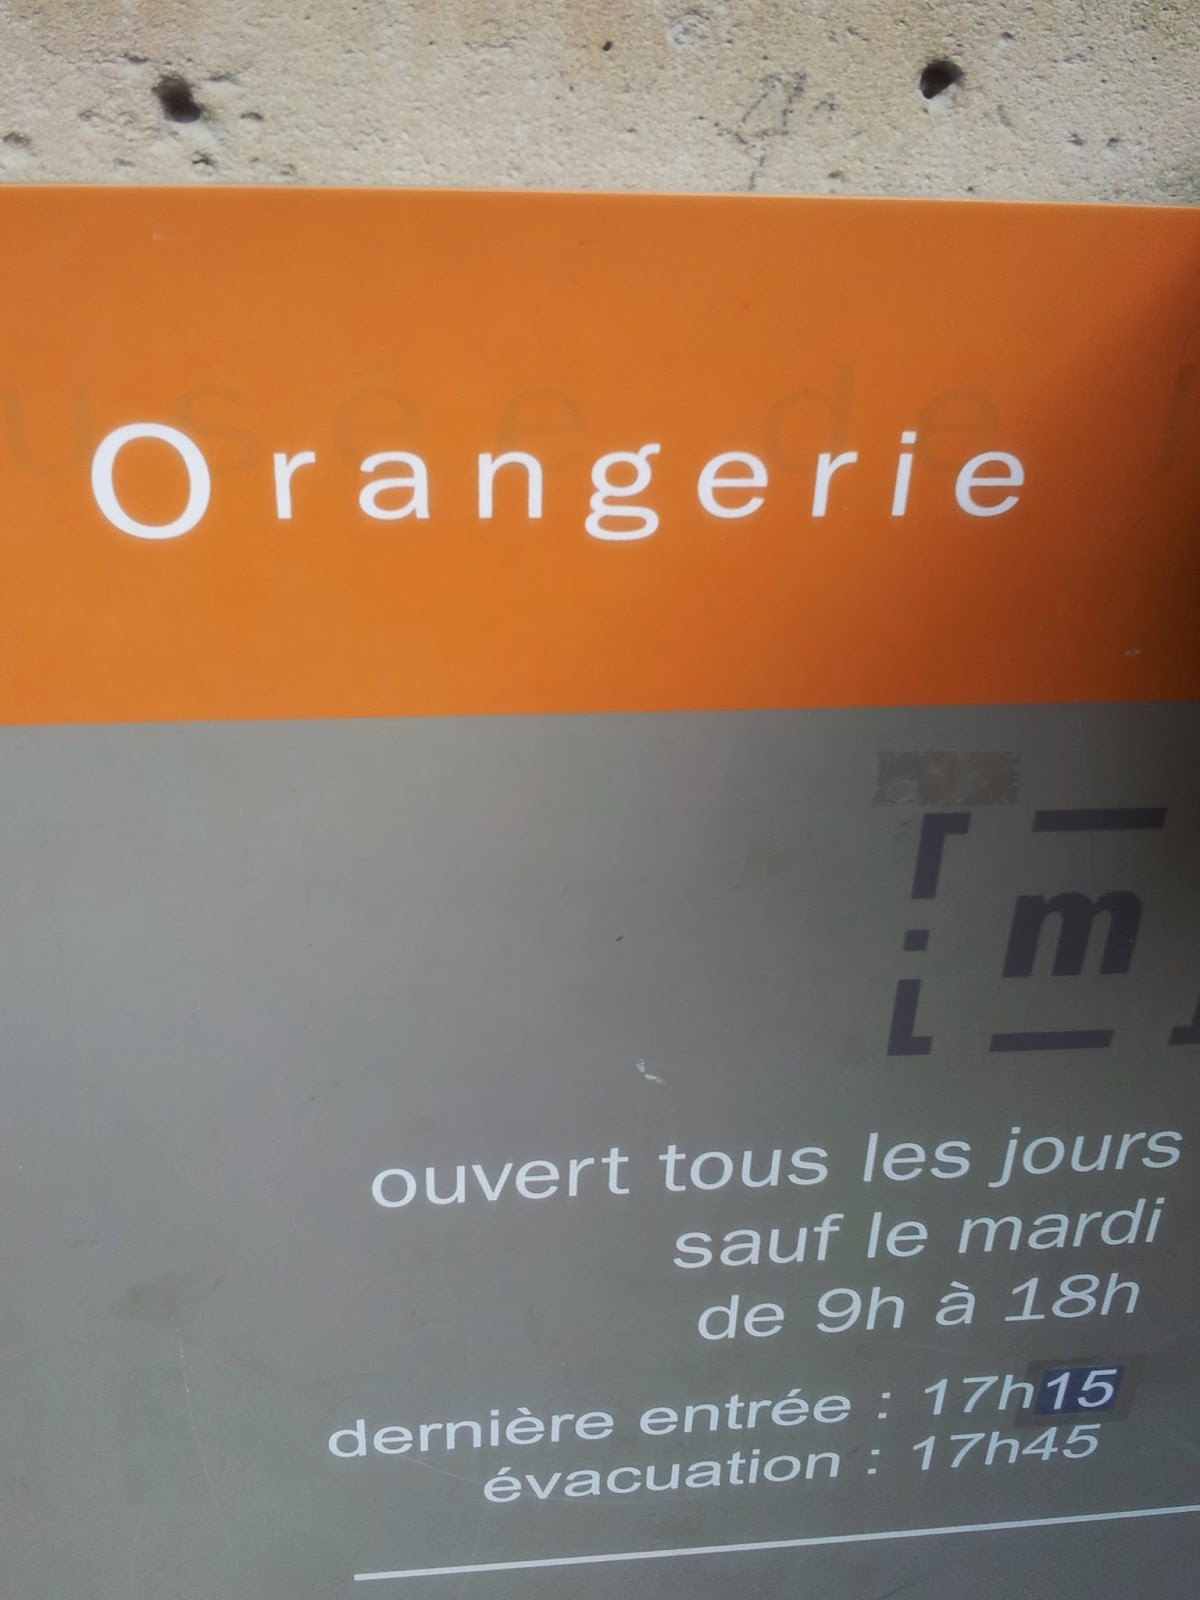 Orangerie museum sign, Paris